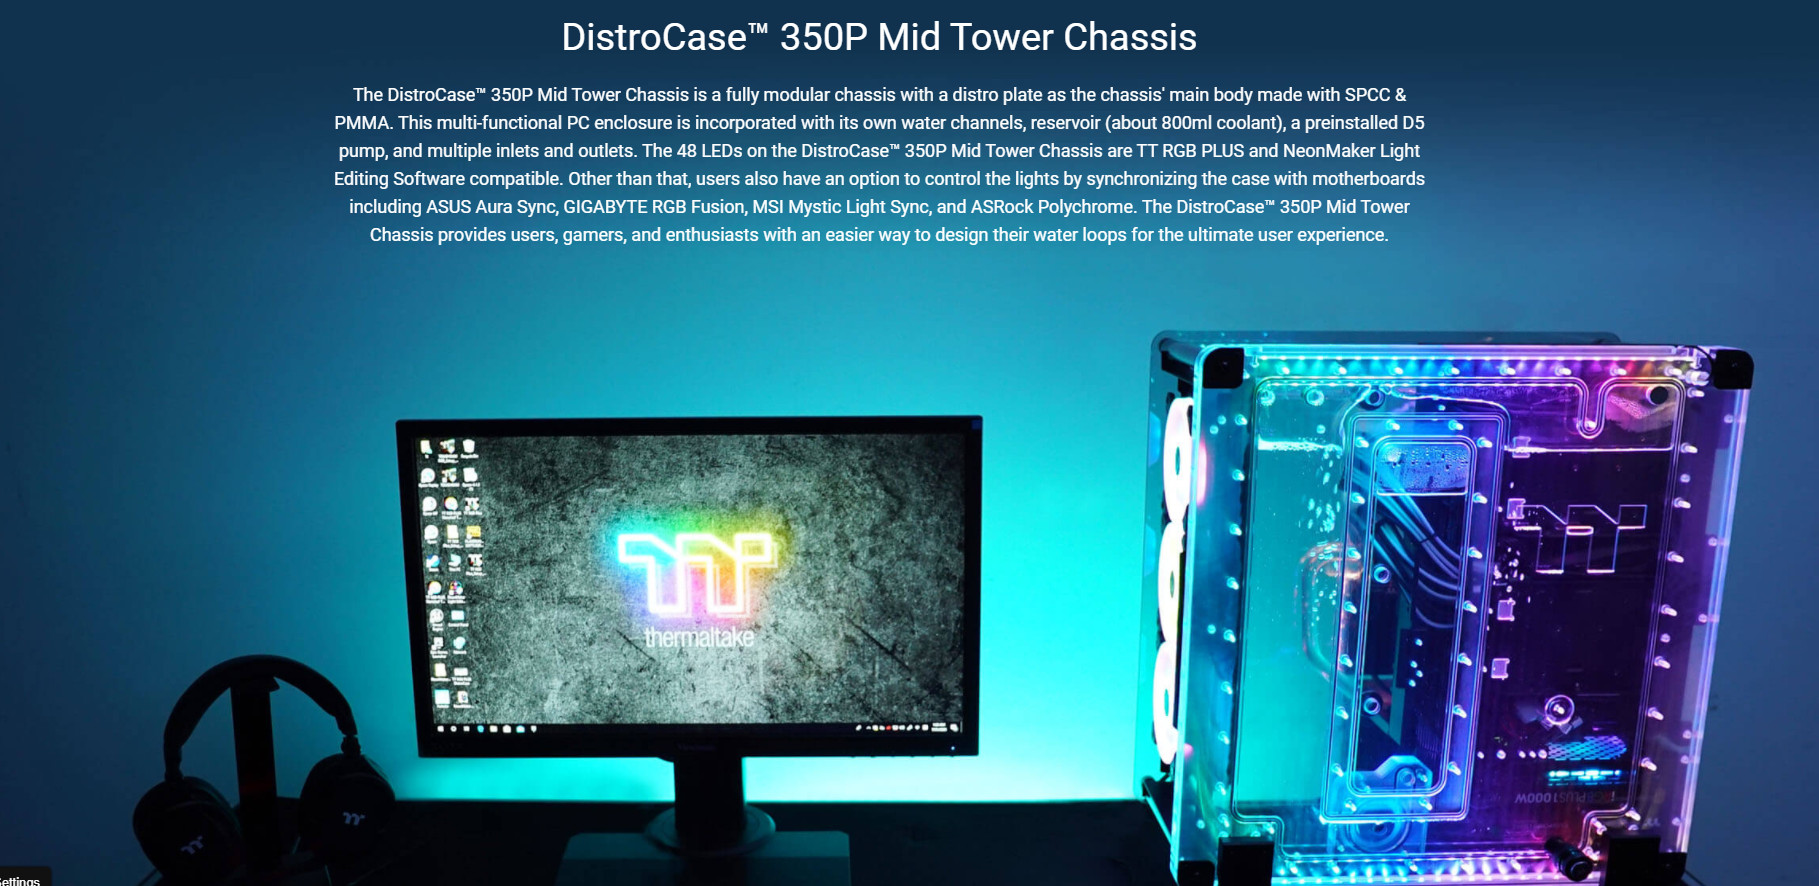 Giới thiệu Vỏ Case Thermaltake DistroCase 350P Mid Tower Chassis